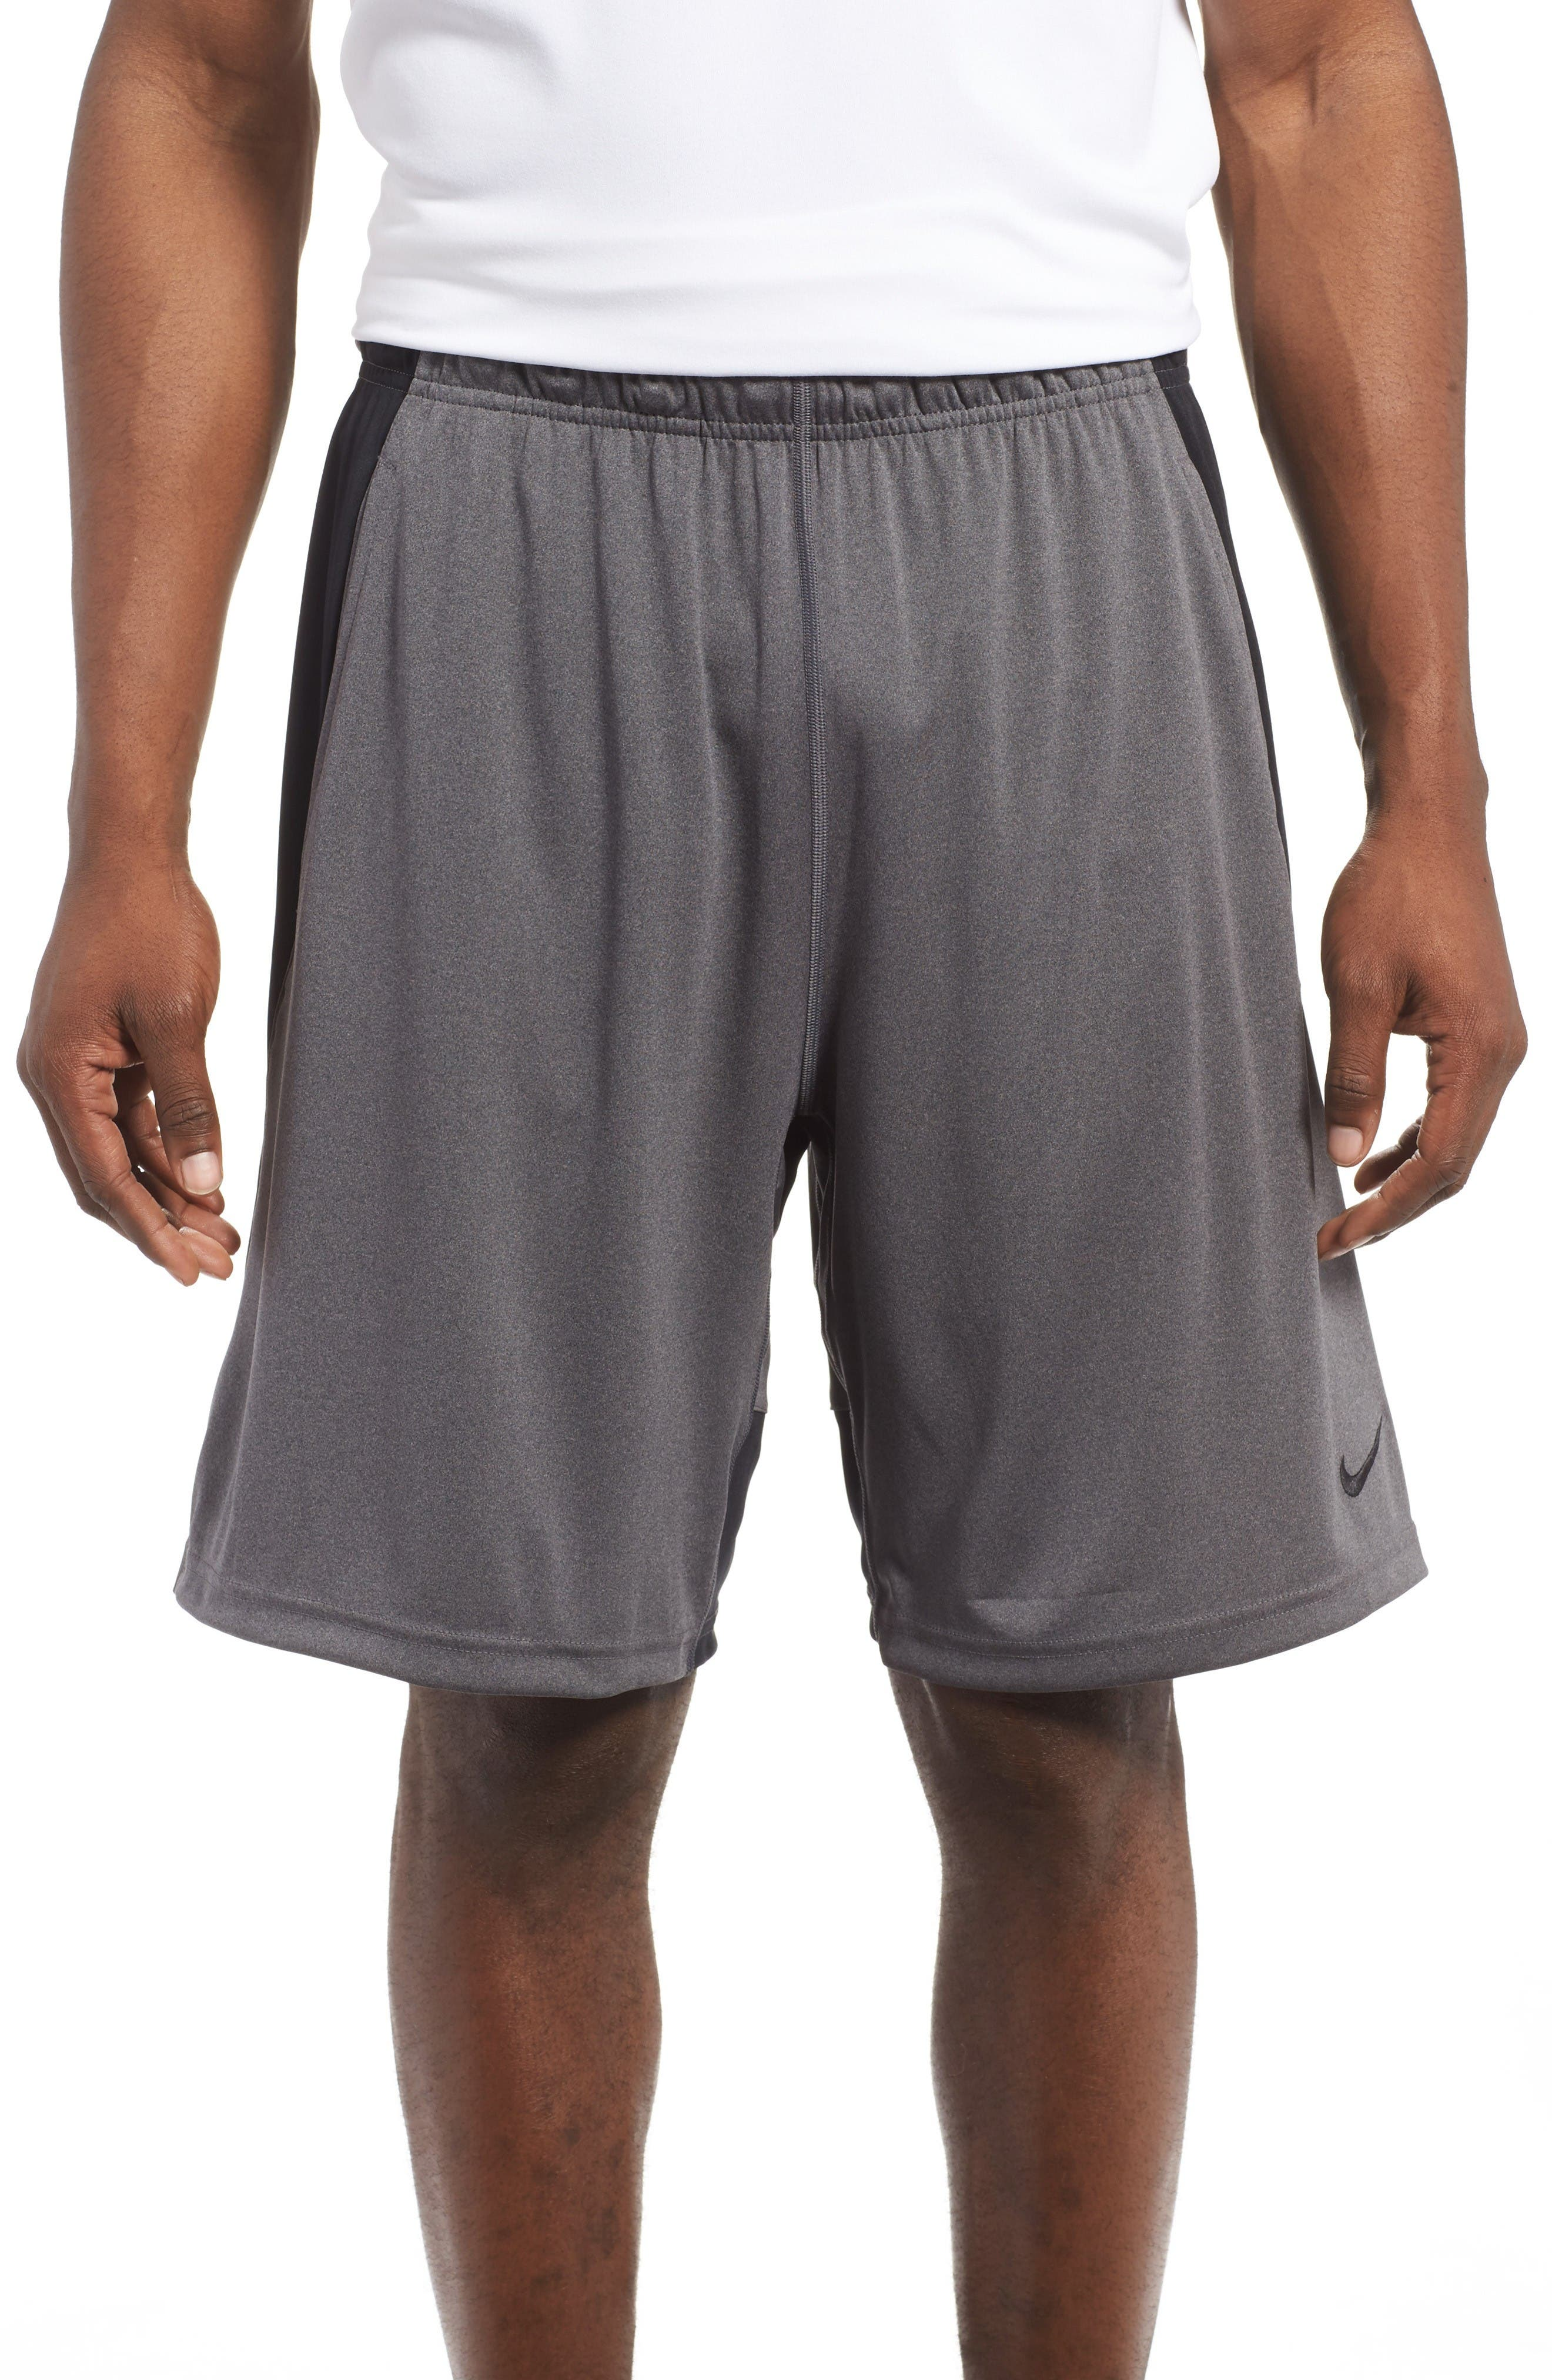 Alternate Image 1 Selected - Nike 'Fly' Dri-FIT Training Shorts